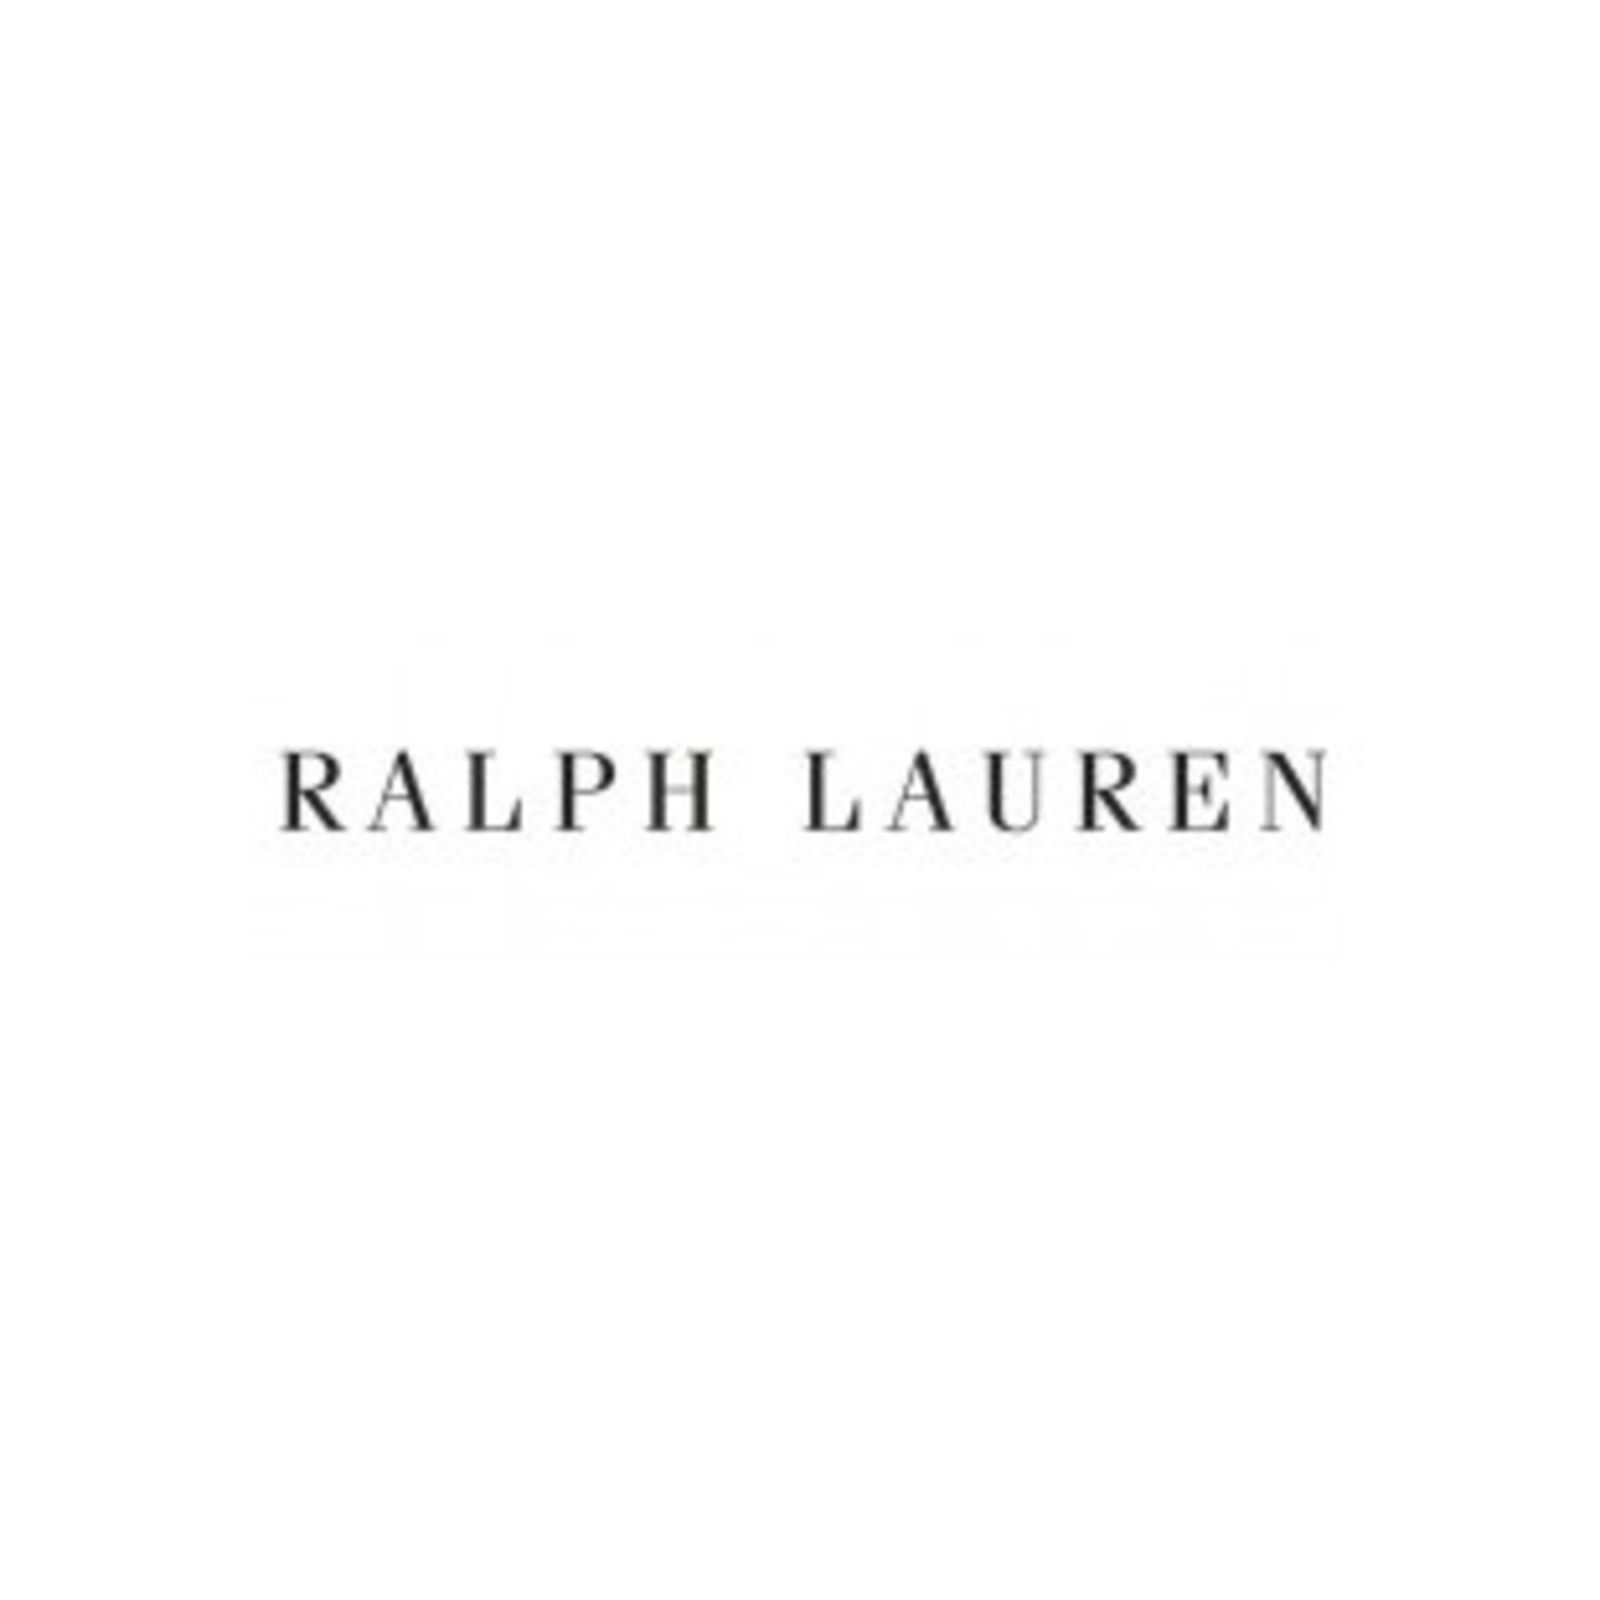 RALPH LAUREN COLLECTION (Изображение 1)